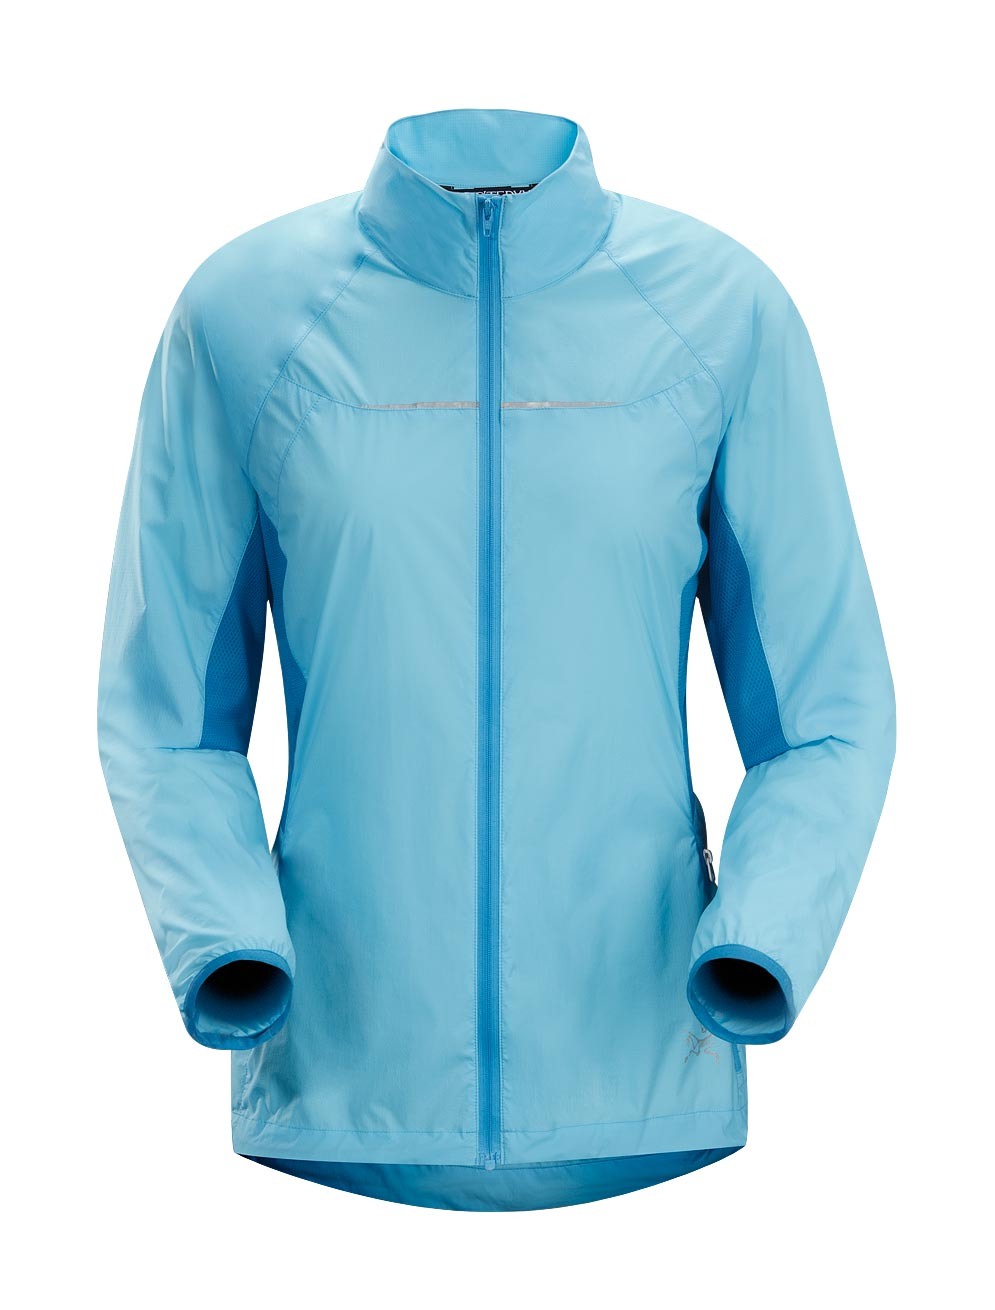 Arcteryx Sky Cita Jacket - New